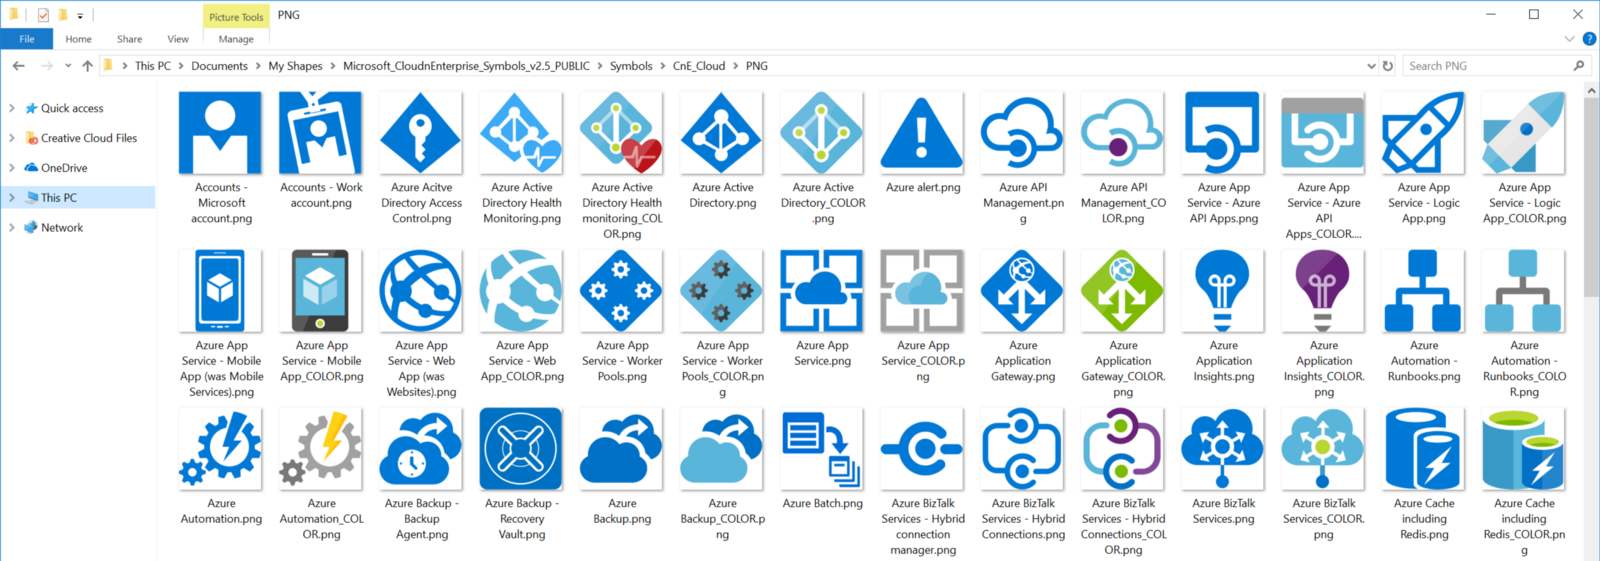 Microsoft Azure Symbol Icon Set Download Visio Stencil Png And Svg